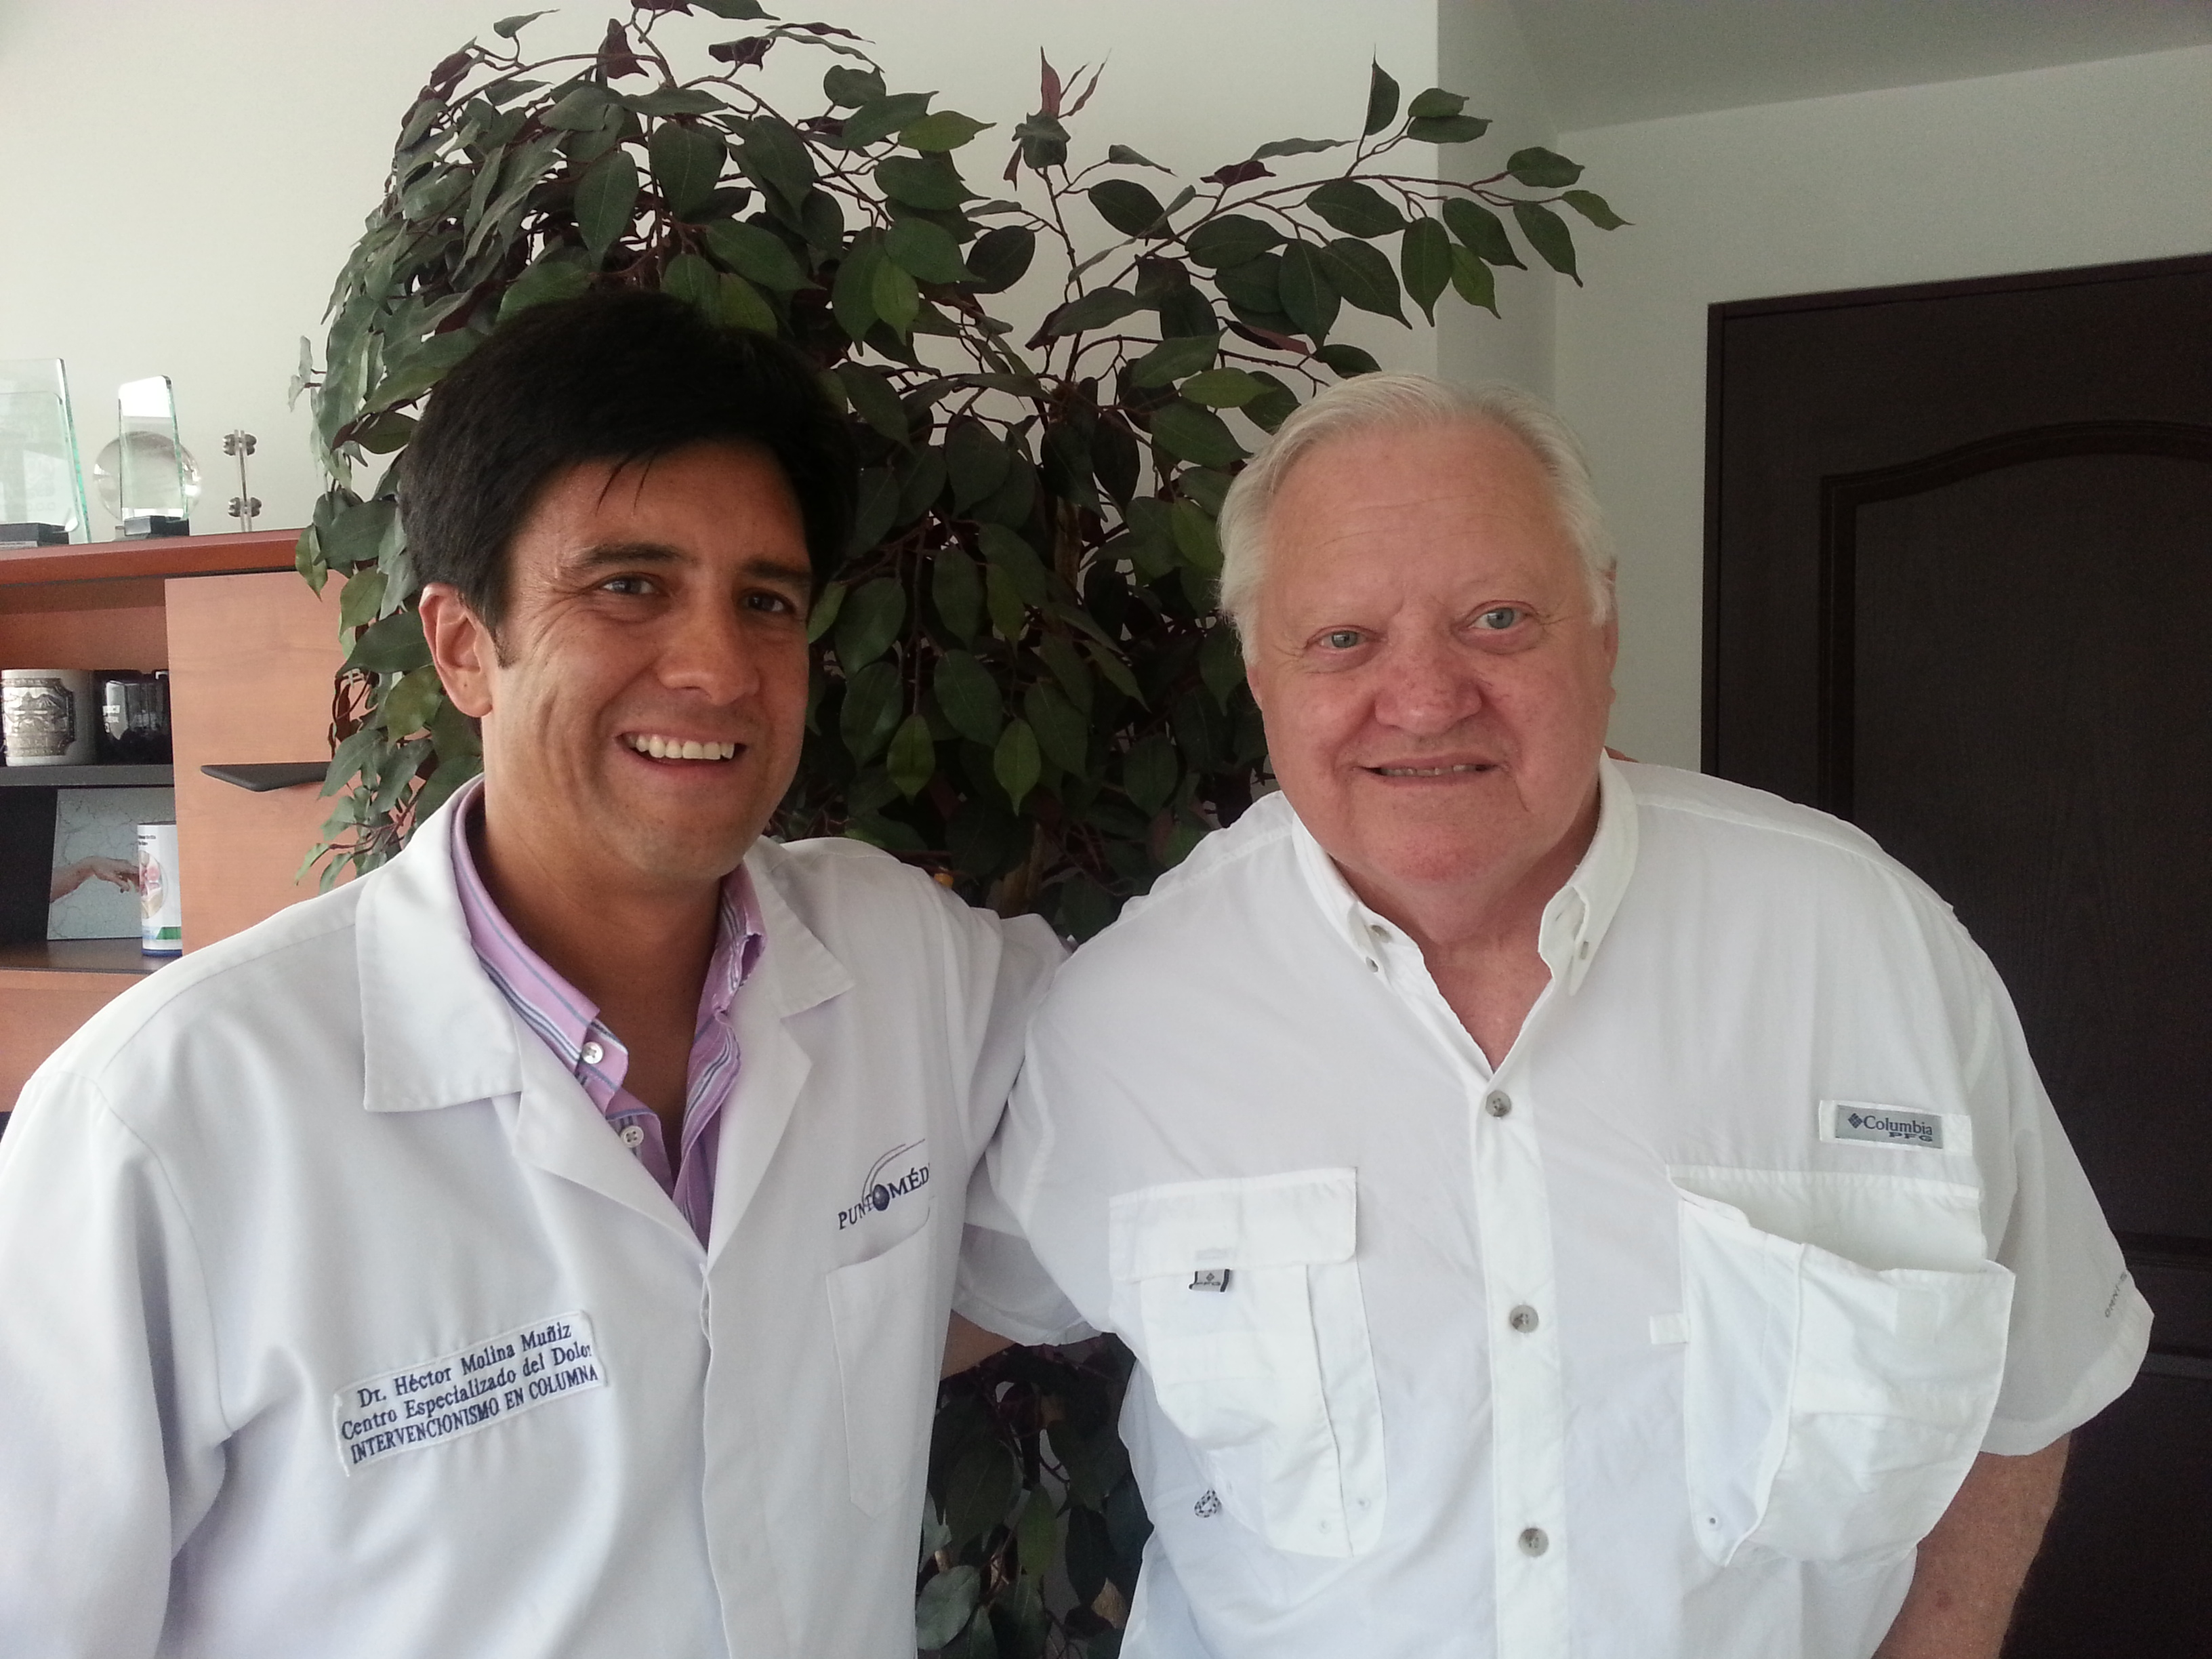 Jim B.,Tx. with Dr. Muñoz-Muniz